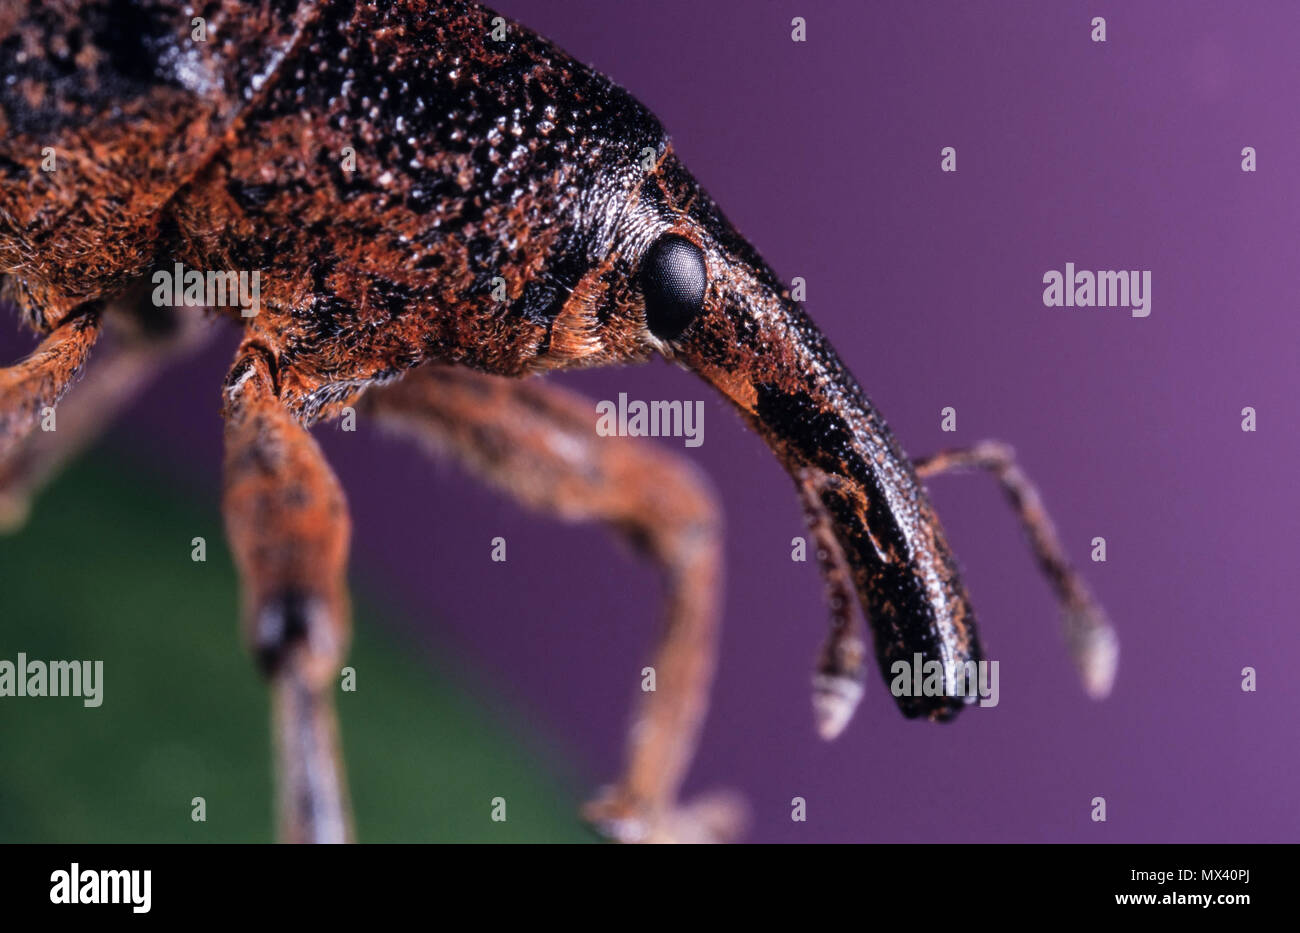 Weevil, Notaris bimaculatus. Head detail showing eye and prominent snout (rostrum) with jaws at the end. Note elbowed antennae. Portugal - Stock Image